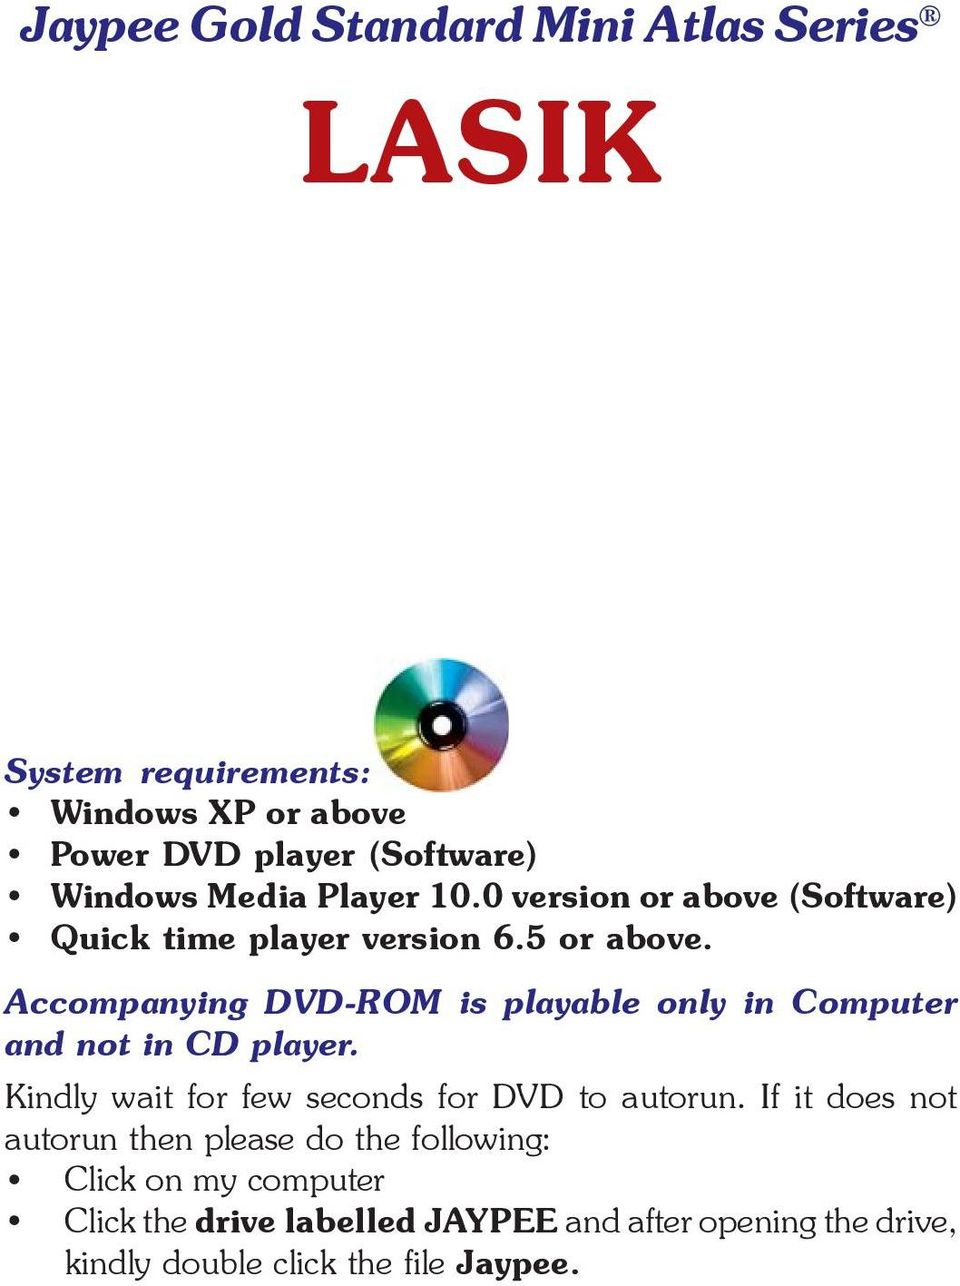 Accompanying DVD-ROM is playable only in Computer and not in CD player. Kindly wait for few seconds for DVD to autorun.